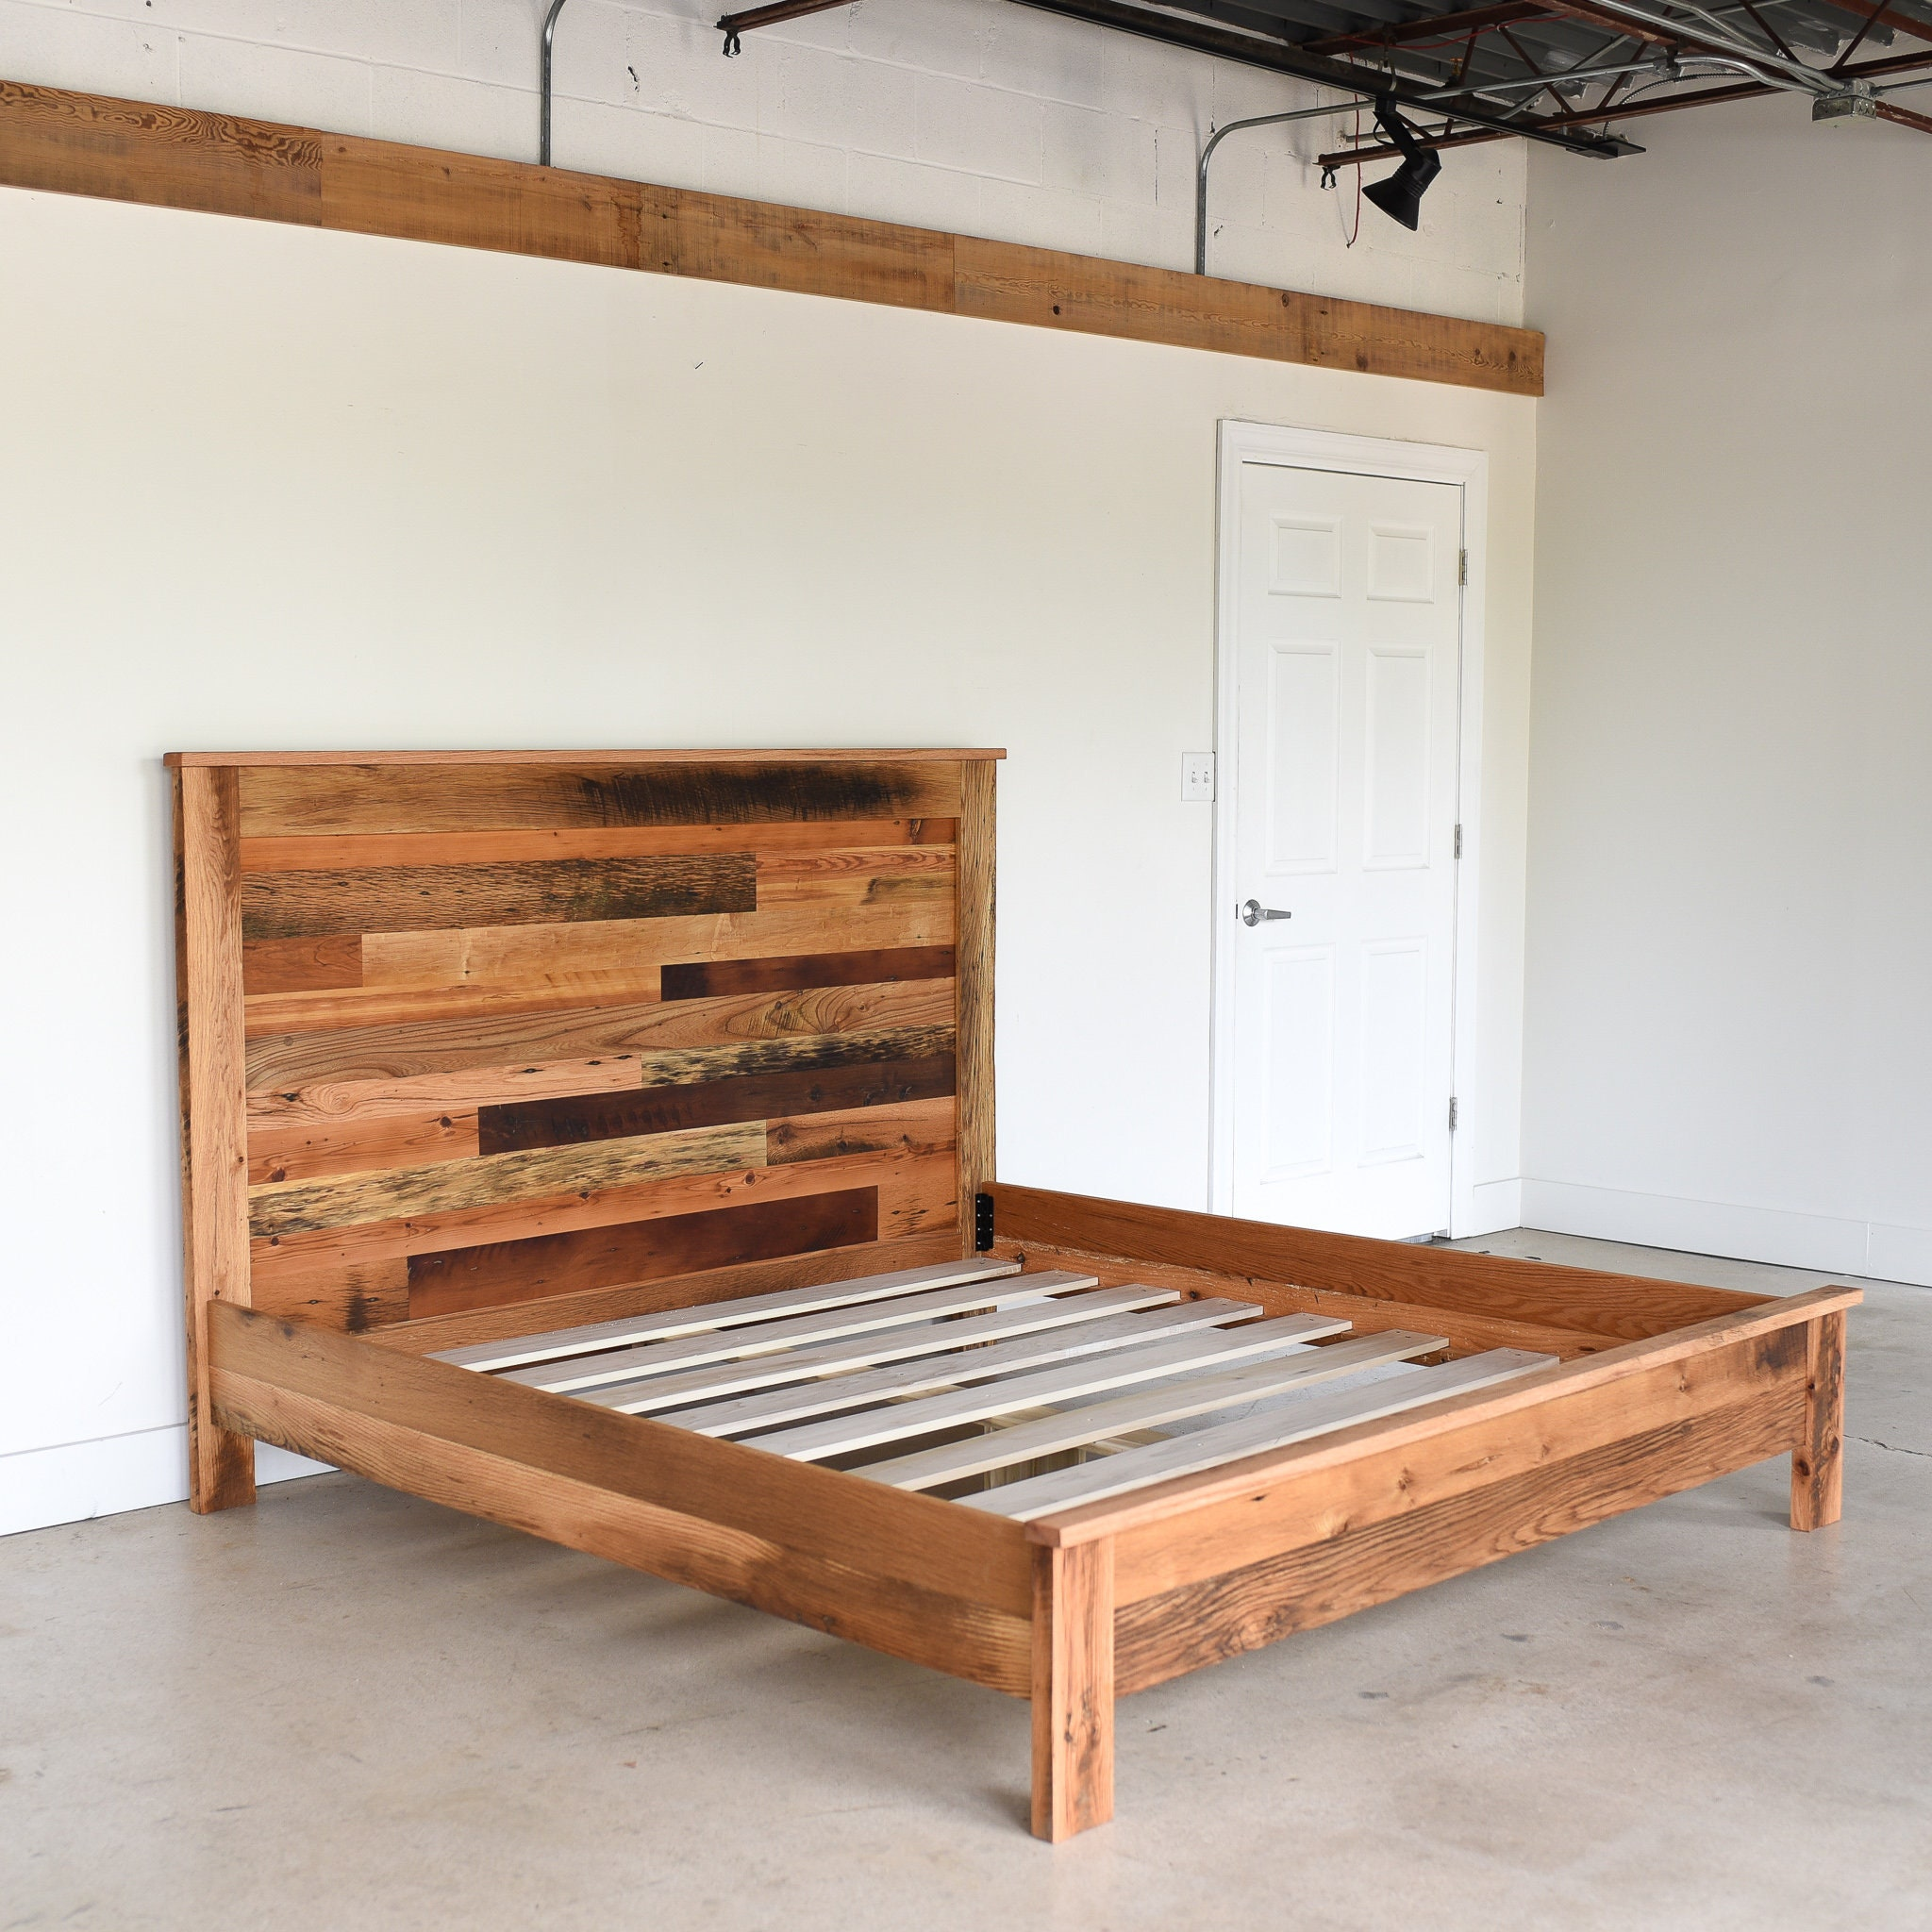 Rustic Reclaimed Wood Bed